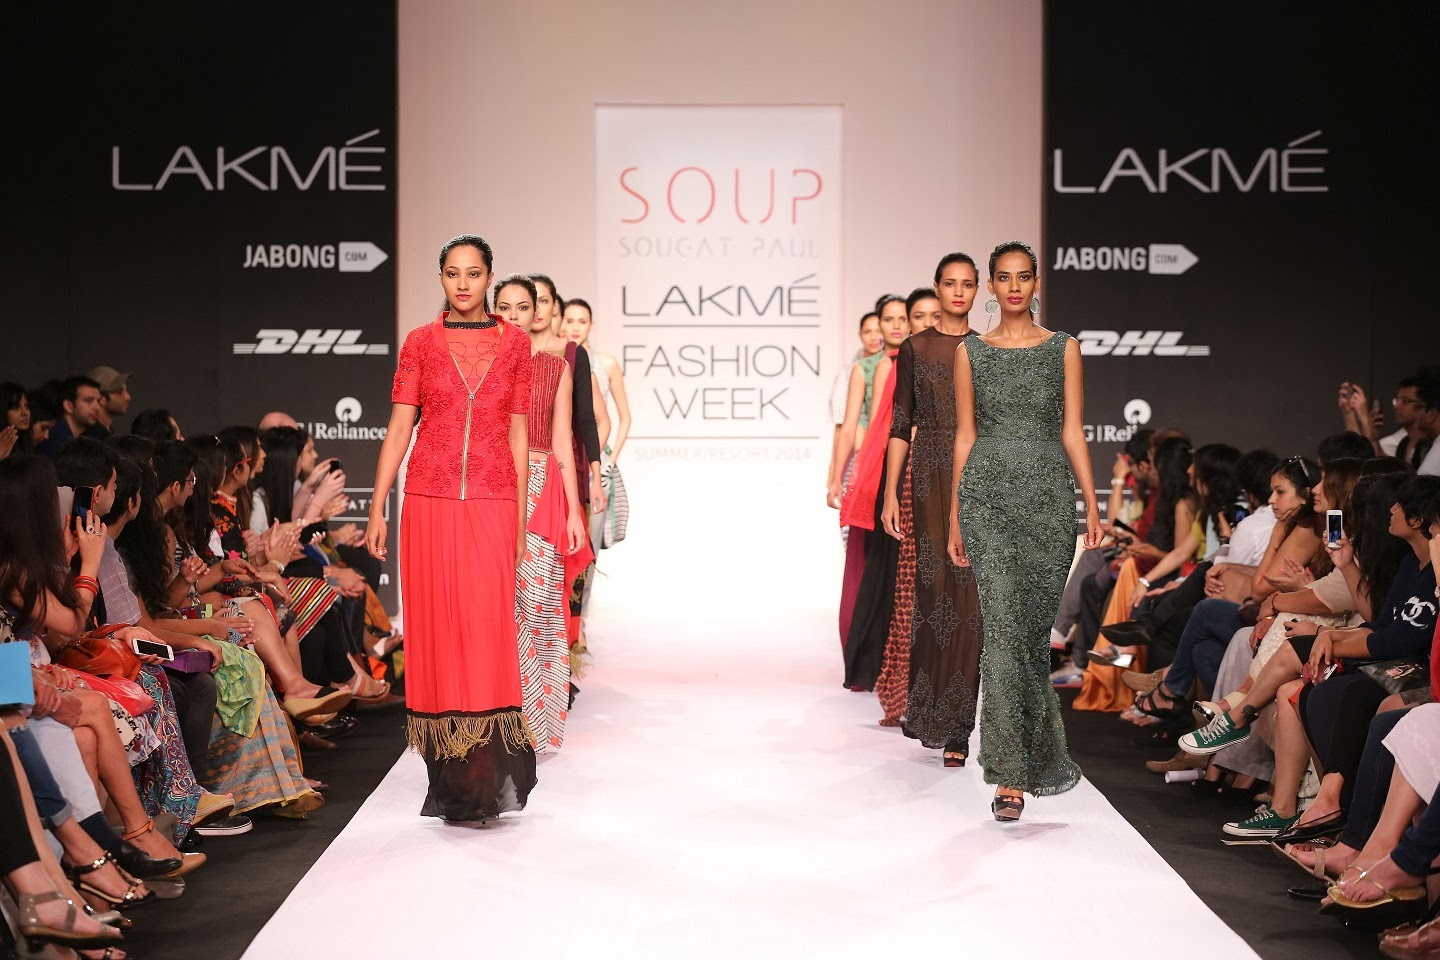 the final line-up for soup by saugat paul Summer/resort 14 at LFW Mumbai at Grand Hyatt